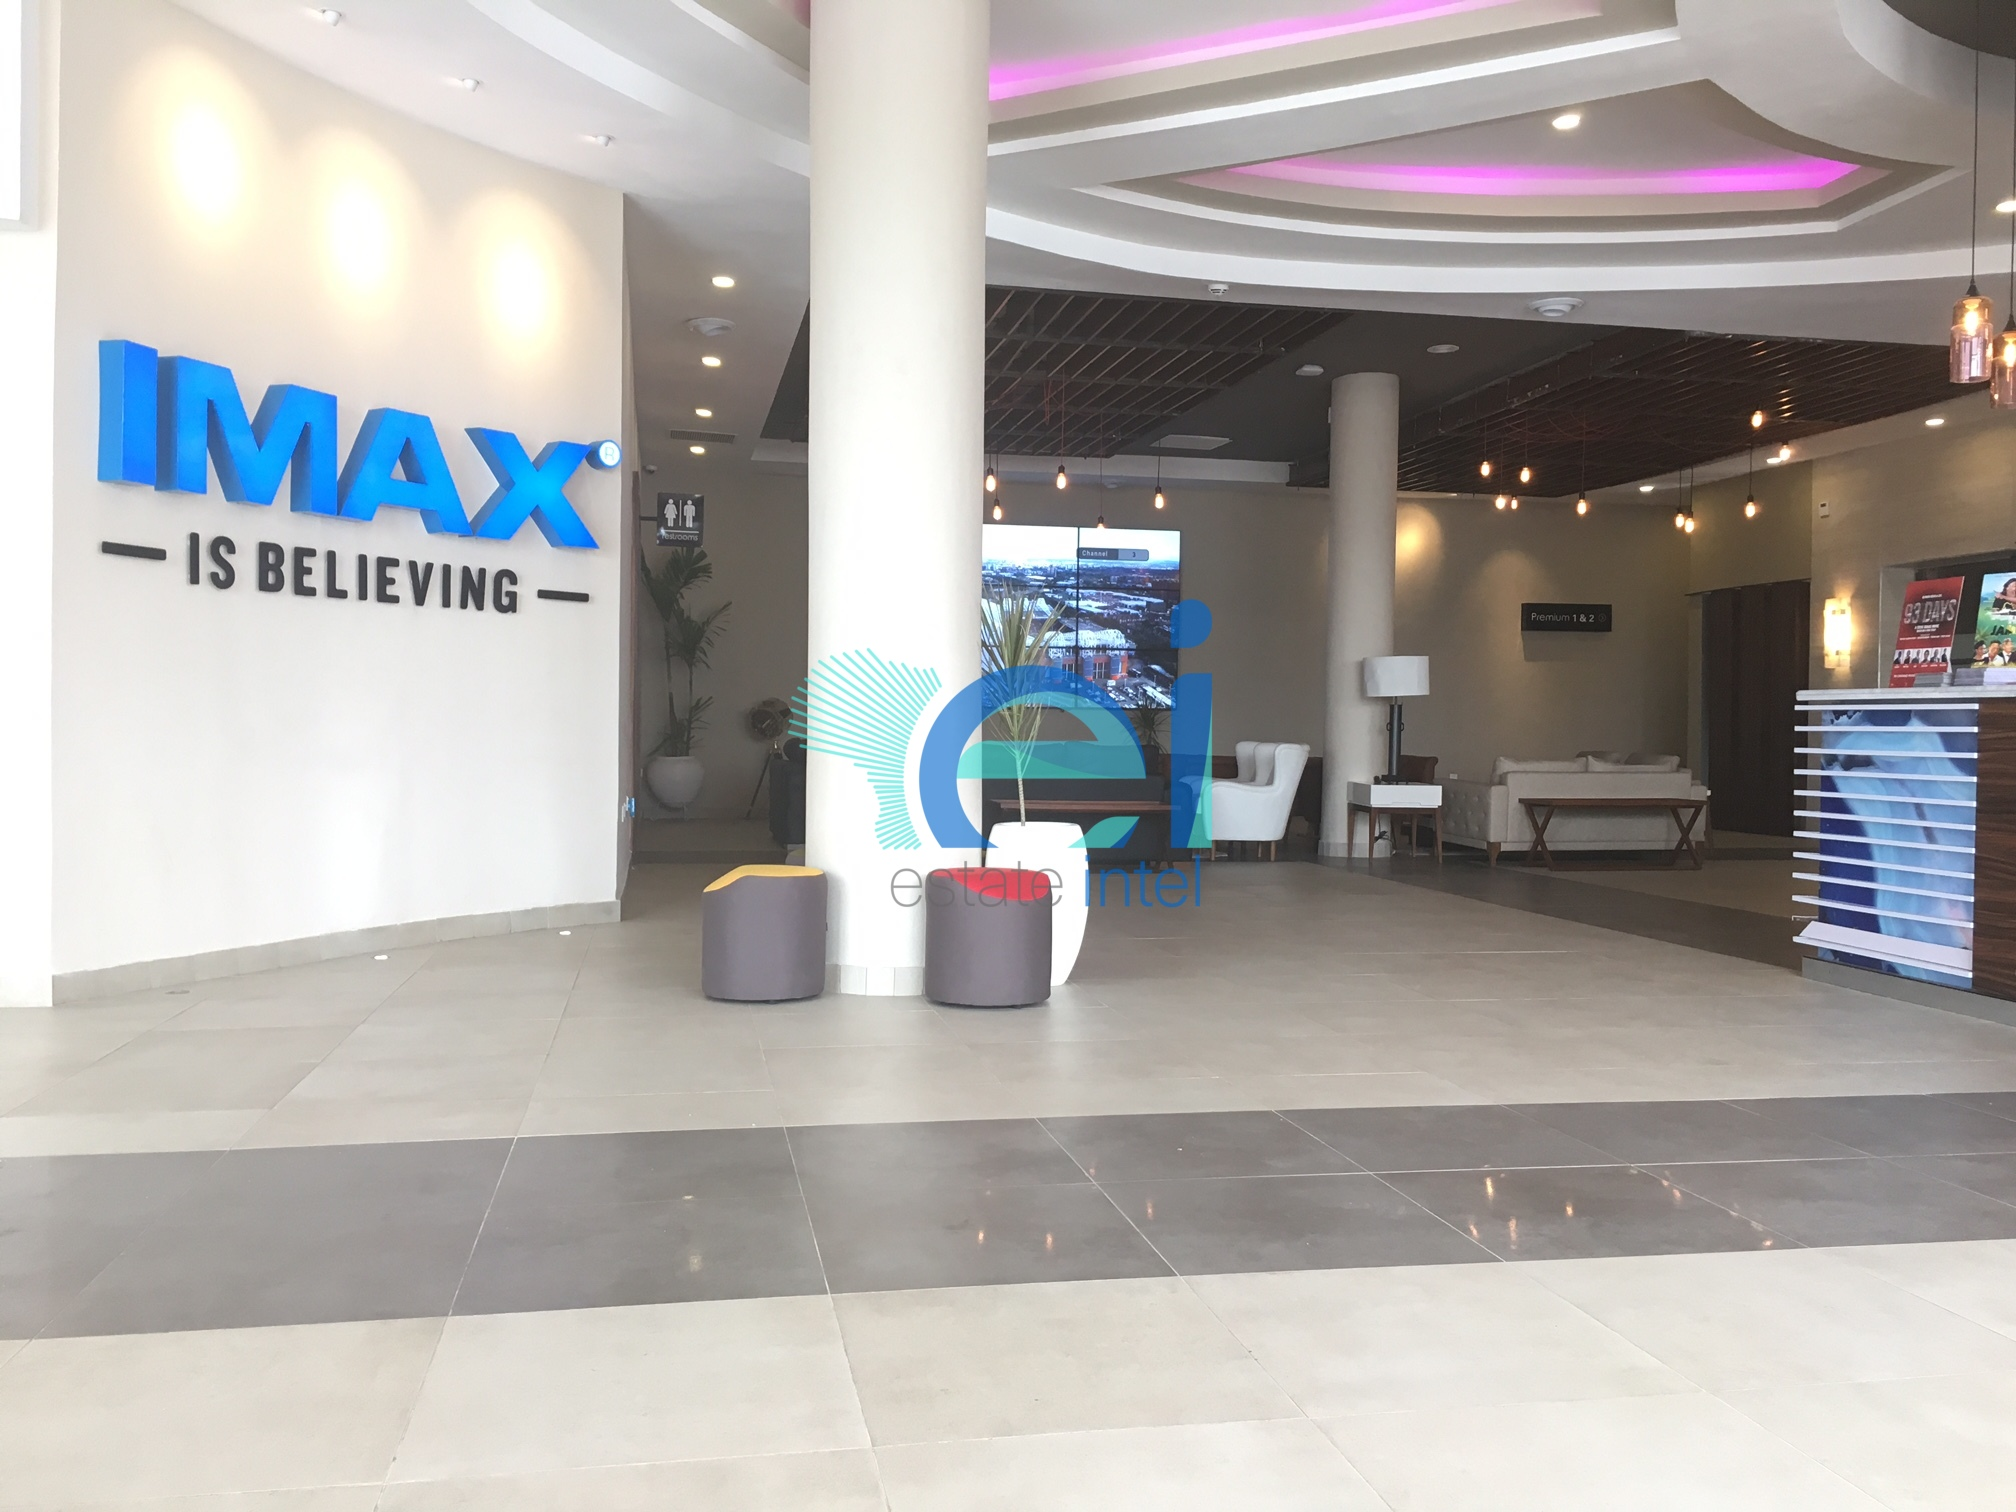 Filmhouse IMAX Cinema Lekki, The Rock Drive, Off Bisola Durosinmi-Etti Drive, Lekki Phase I - Lagos.